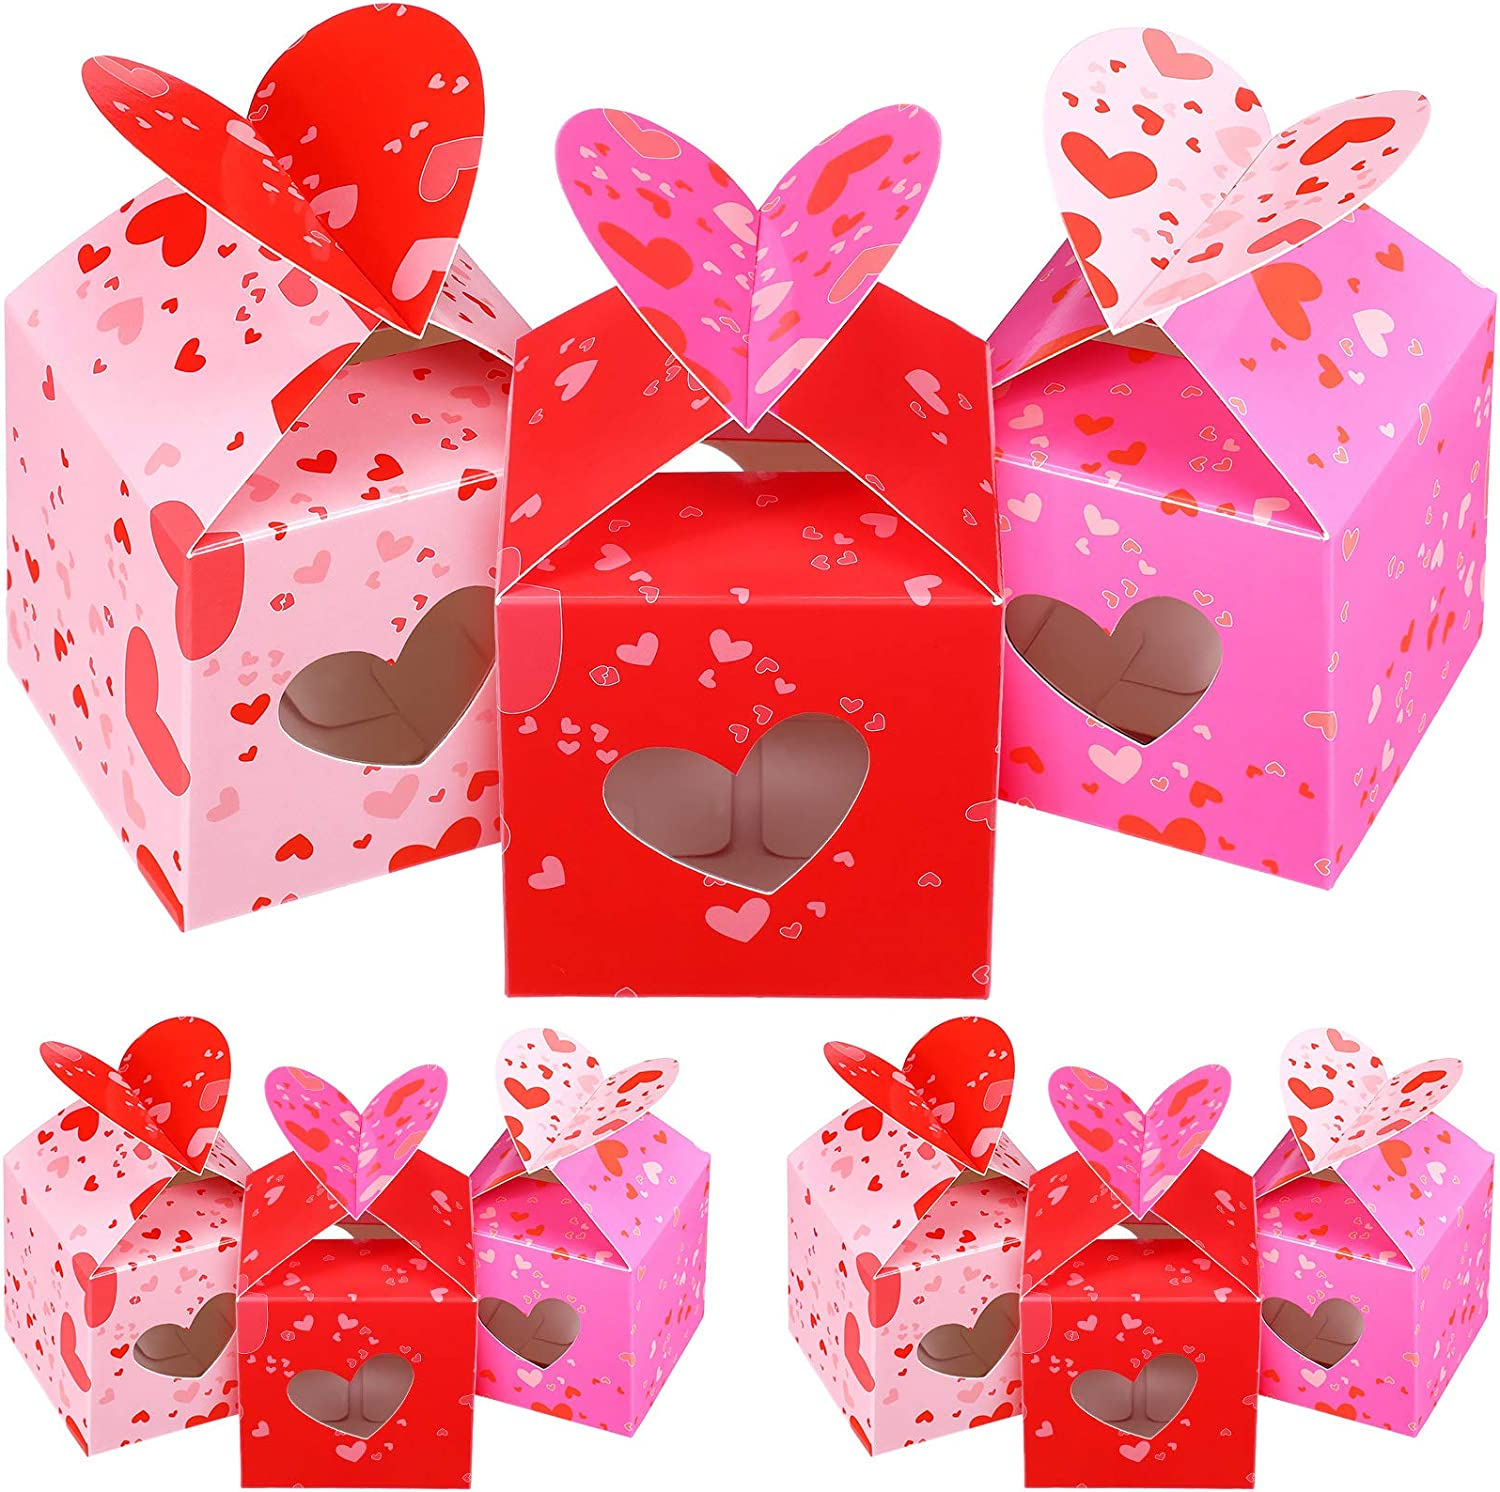 Gift box with lid heart bow design gift wrap for her him packing wrapping case packet casket jewelry box small birthday present box